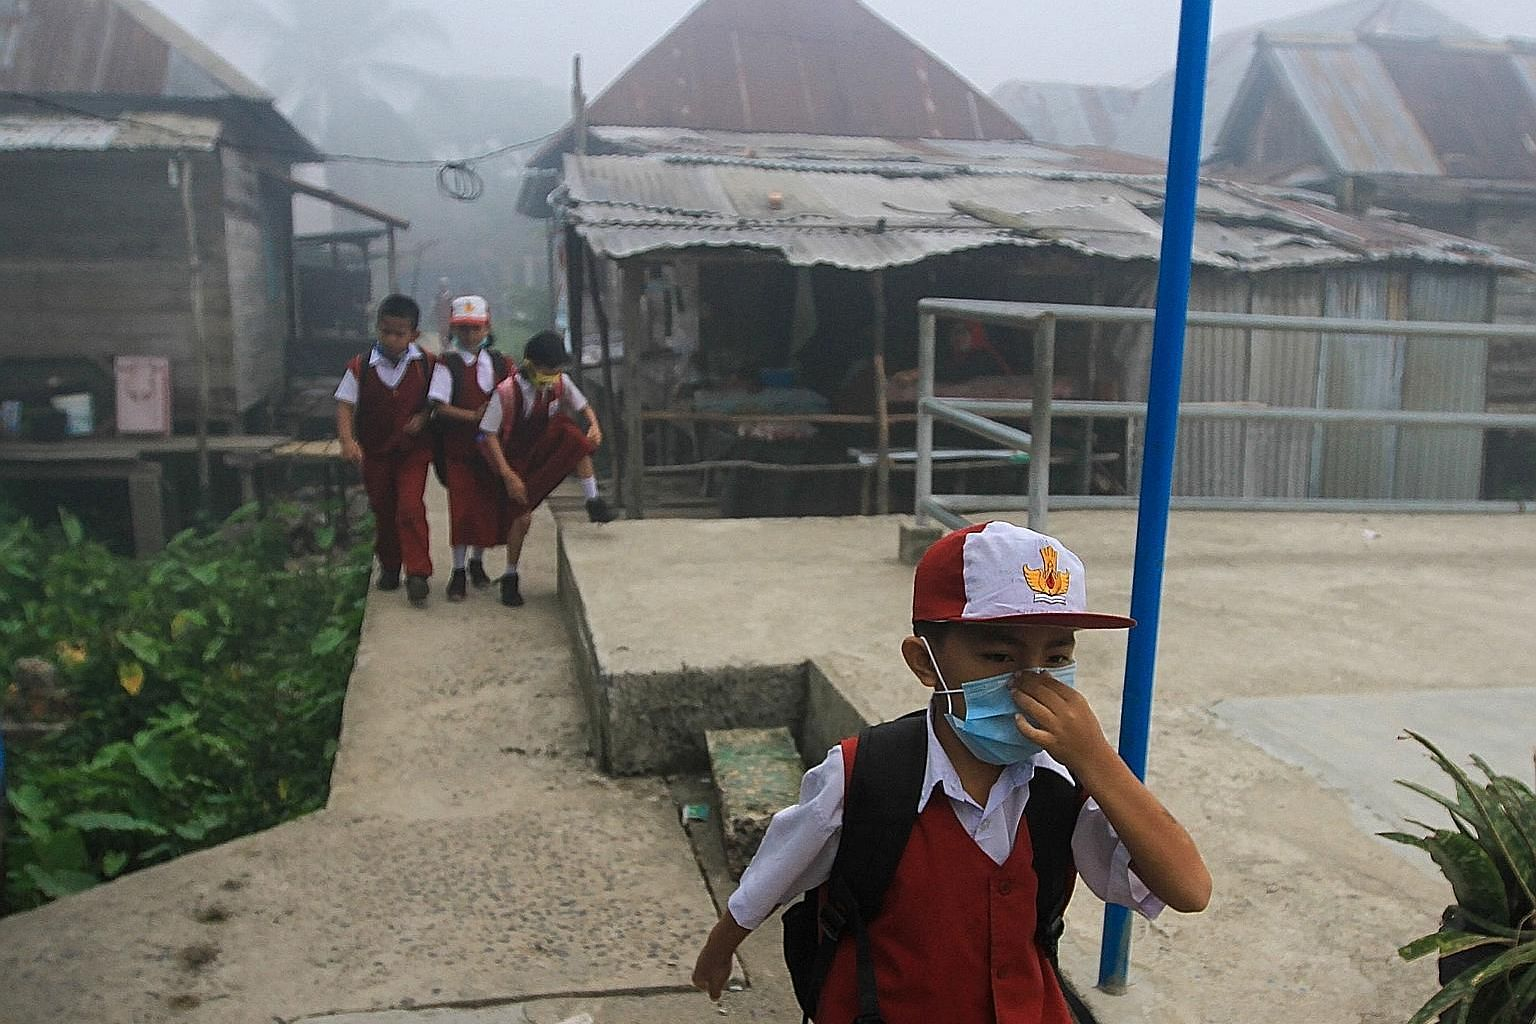 Schoolchildren donning face masks as thick haze caused by forest fires still burning across Indonesia blanketed Palembang yesterday, sending visibility plummeting to as low as 50m, and forcing most schools around the city to close. The Air Pollutant